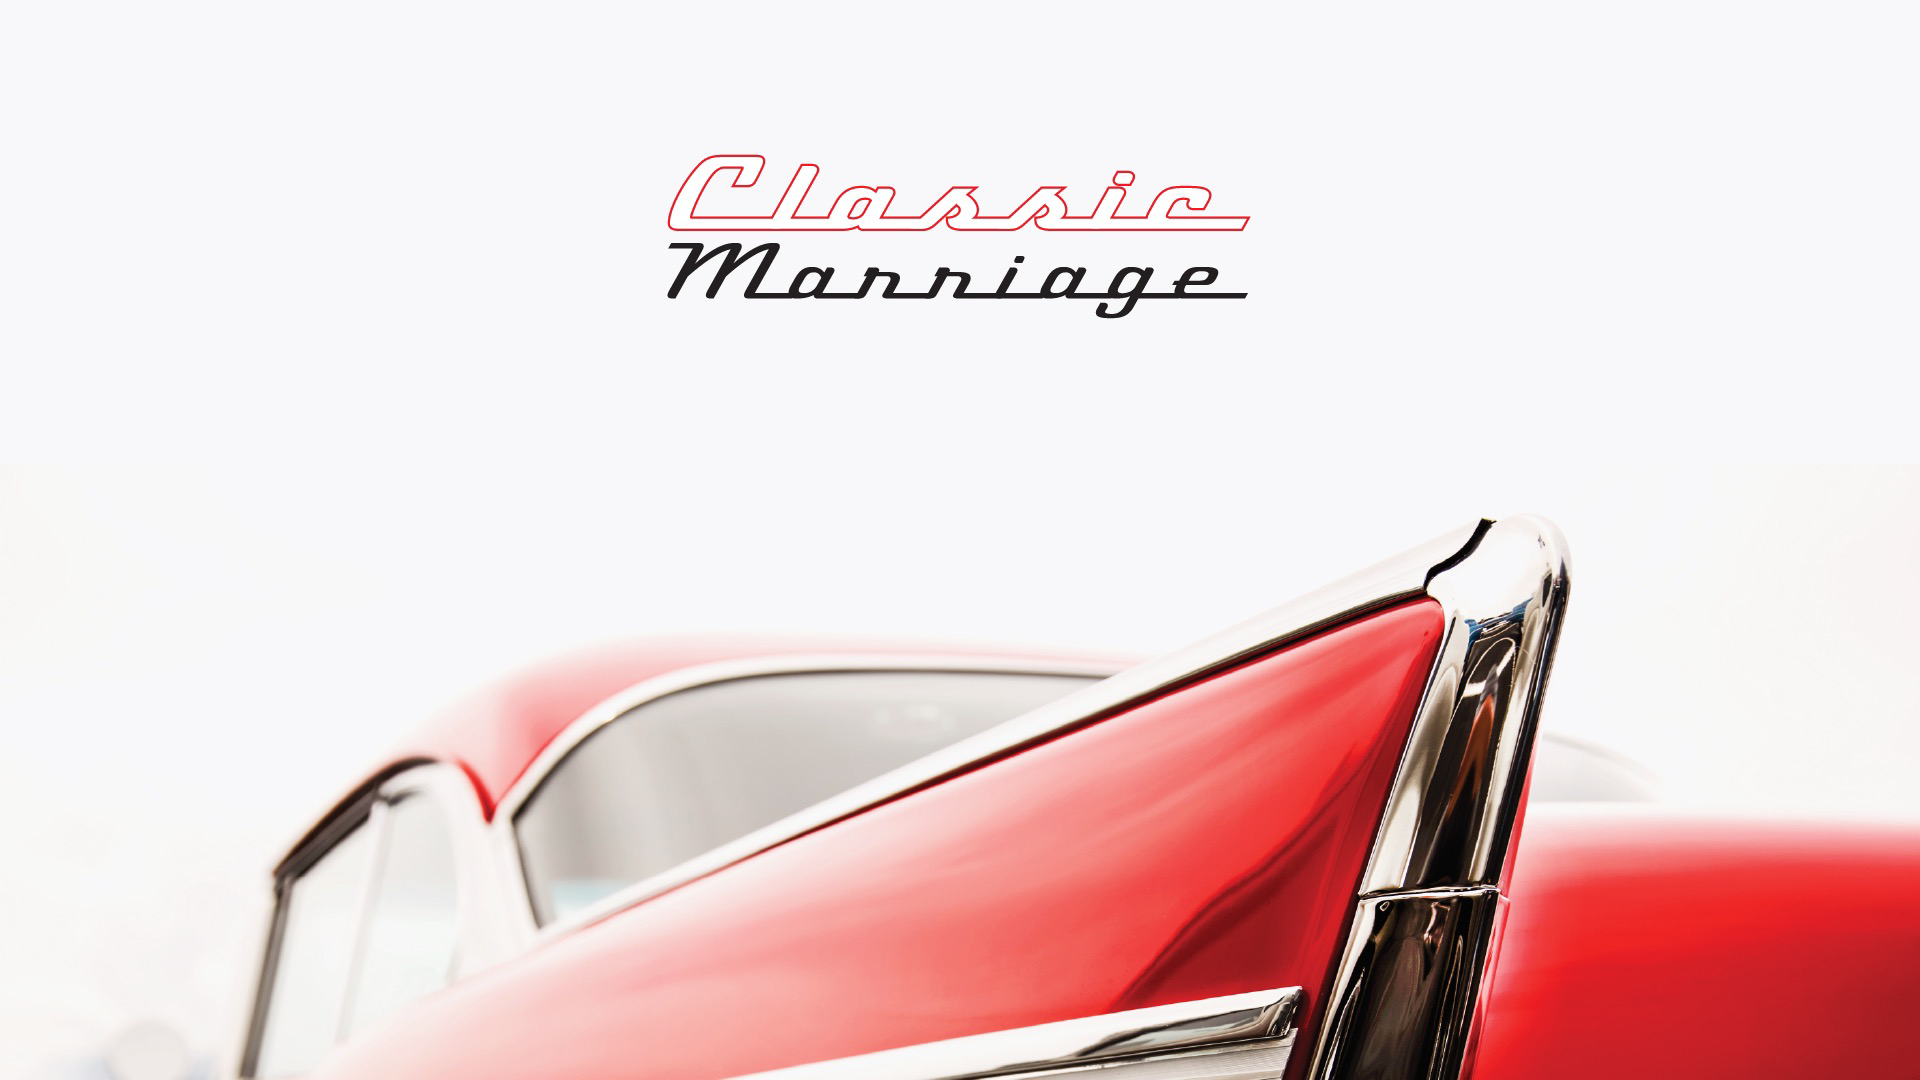 Find out God's design for marriage